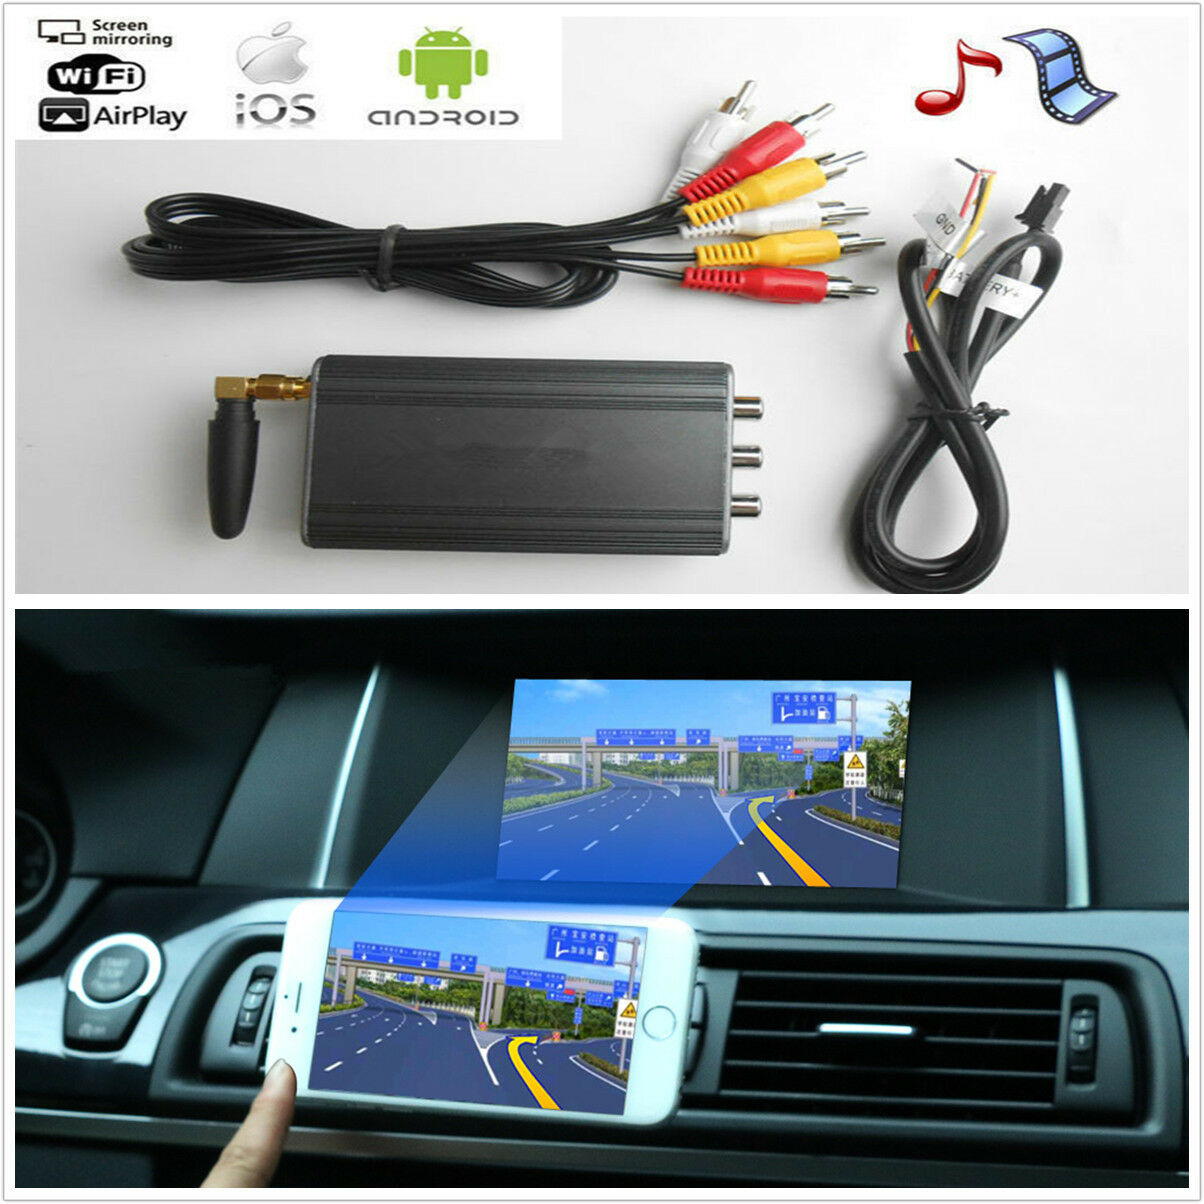 2018 car miracast airplay android ios wifi mirror link for Ebay motors app android